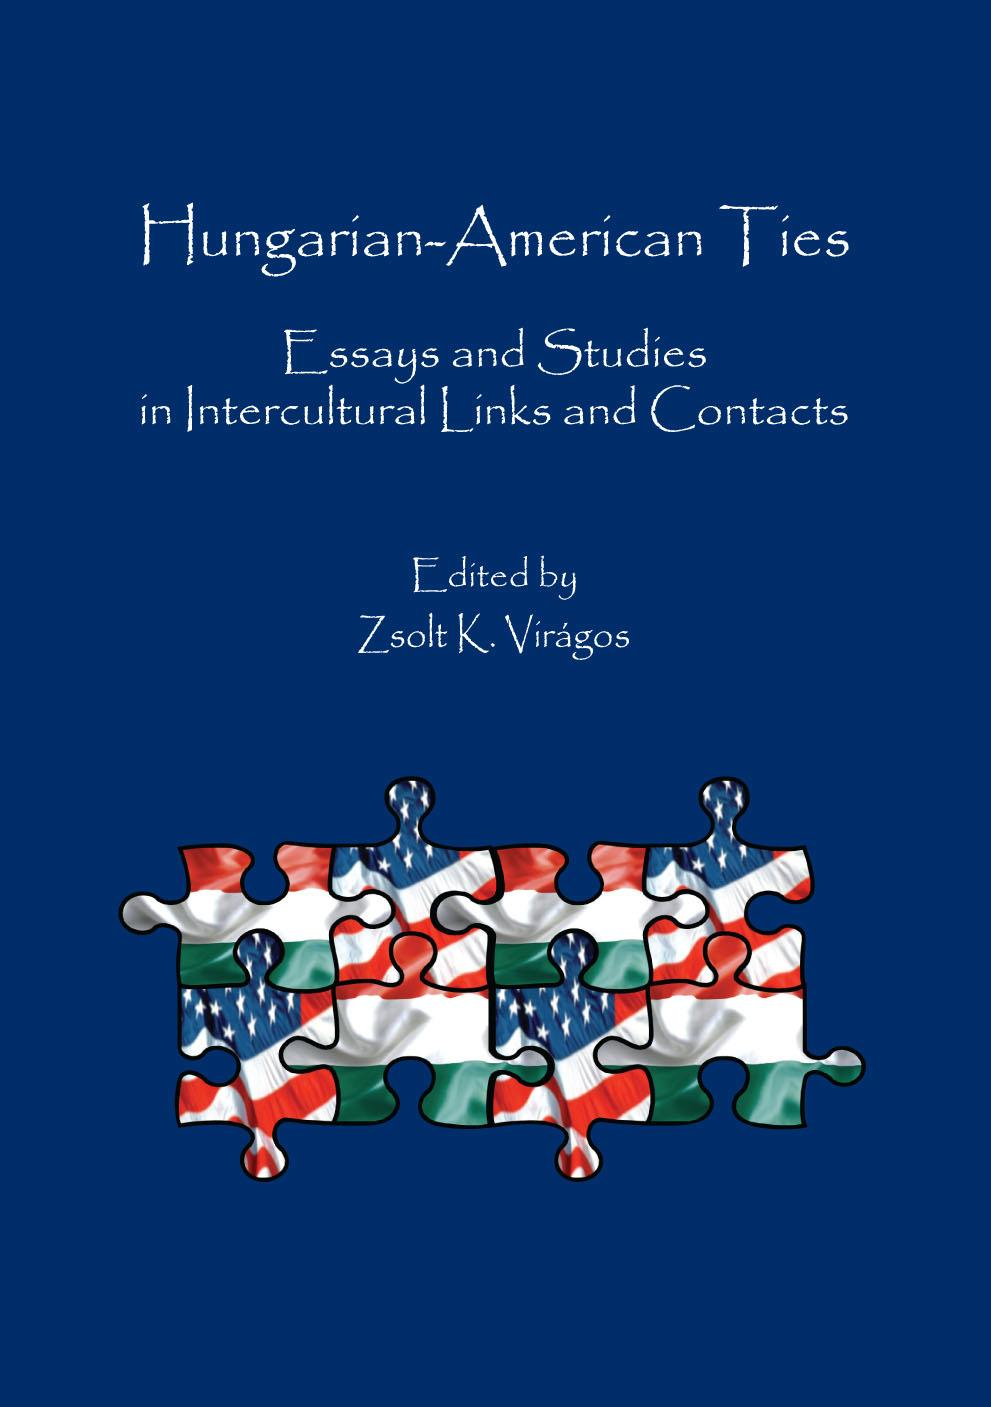 HUNGARIAN-AMERICAN TIES - ESSAYS AND STUDIES IN INTERCULTURAL LINKS AND CONTACTS